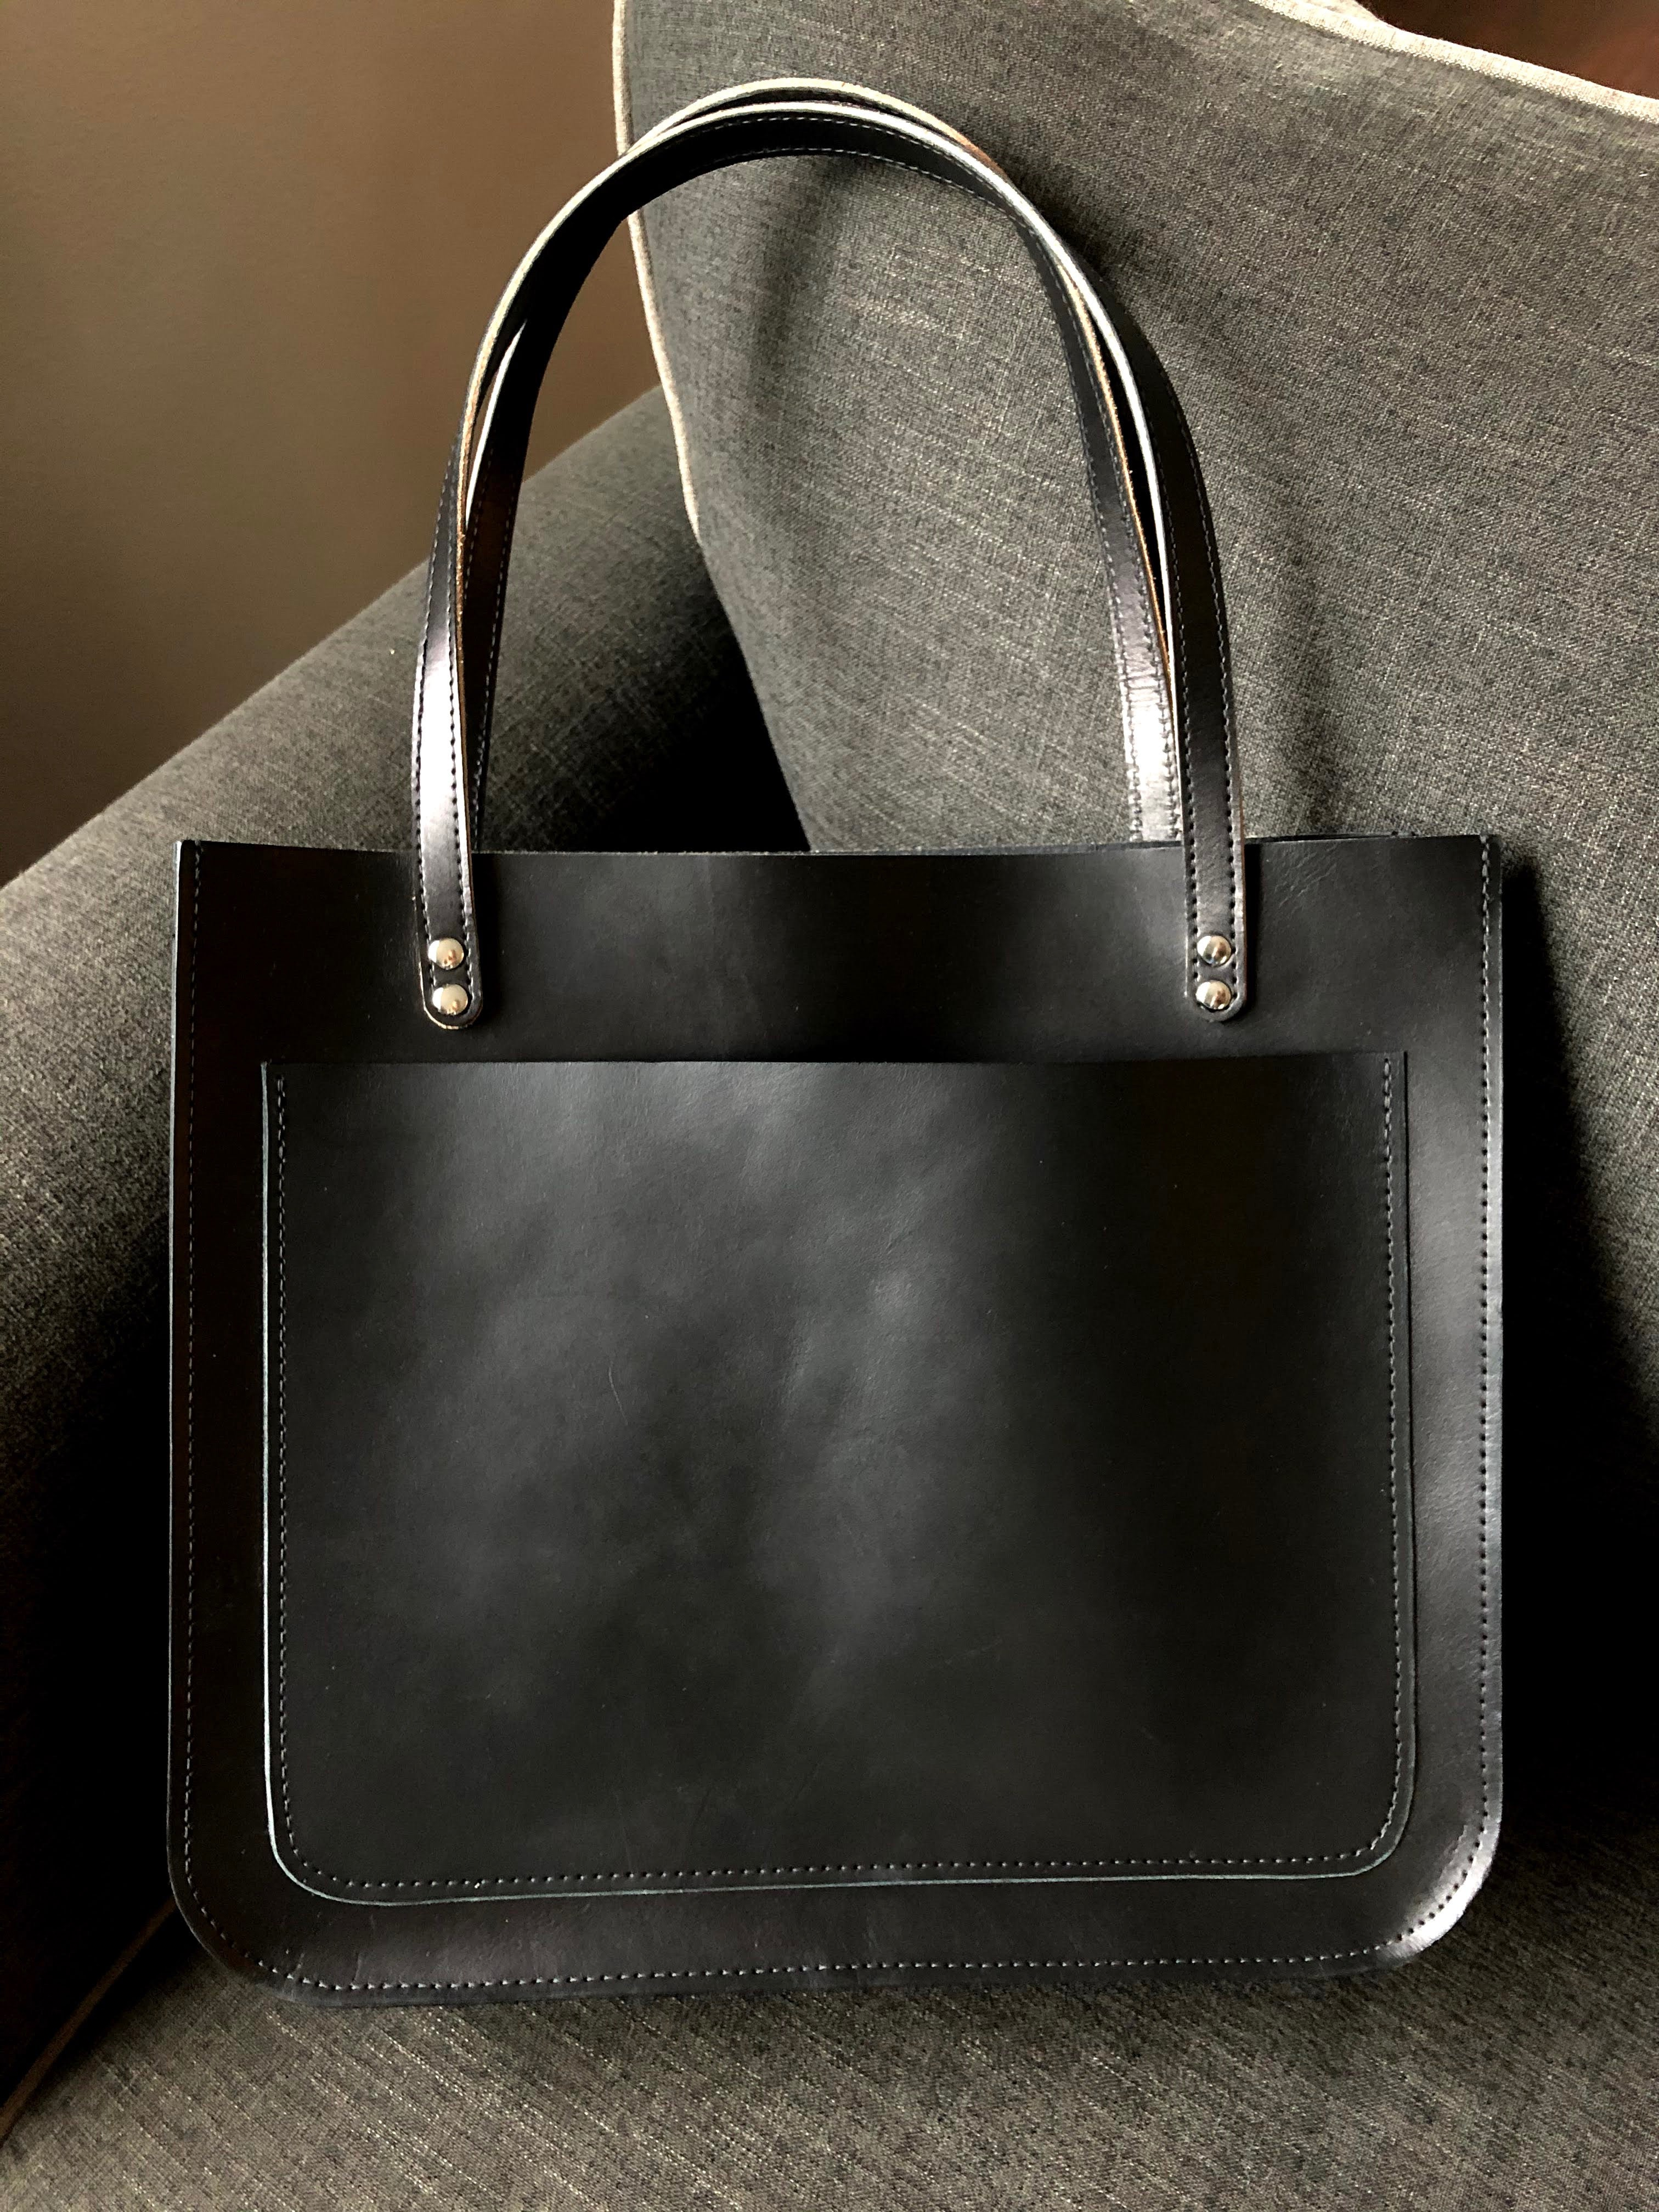 Structured Tote / Large Leather Tote Bag / Leather Tote With Pocket